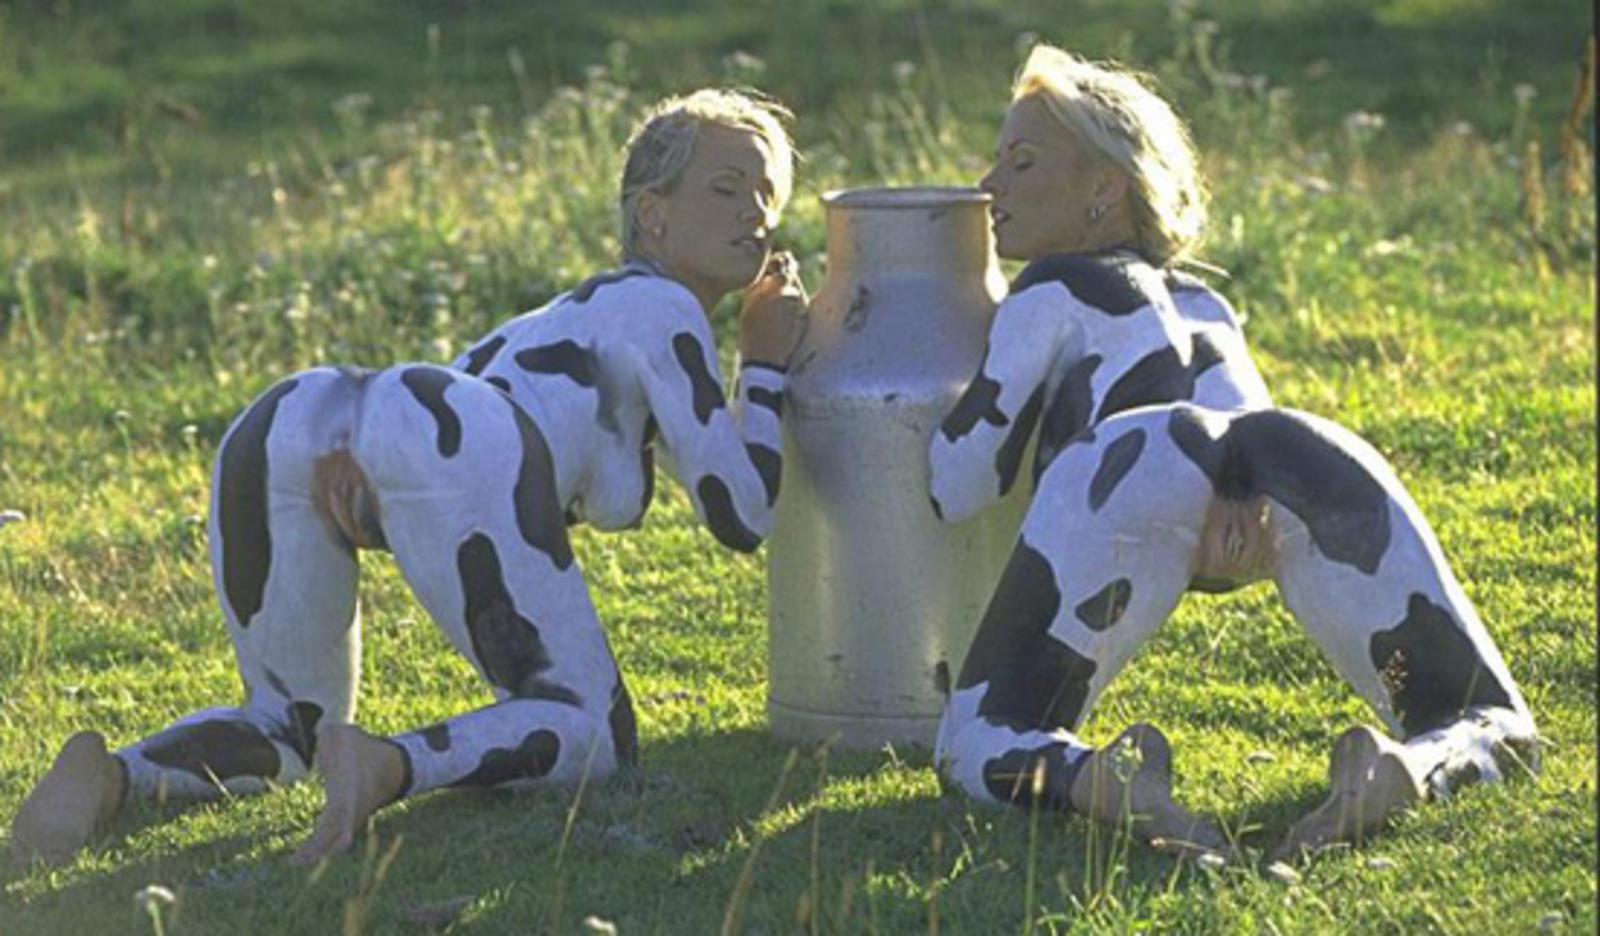 Cow porn photo erotic images